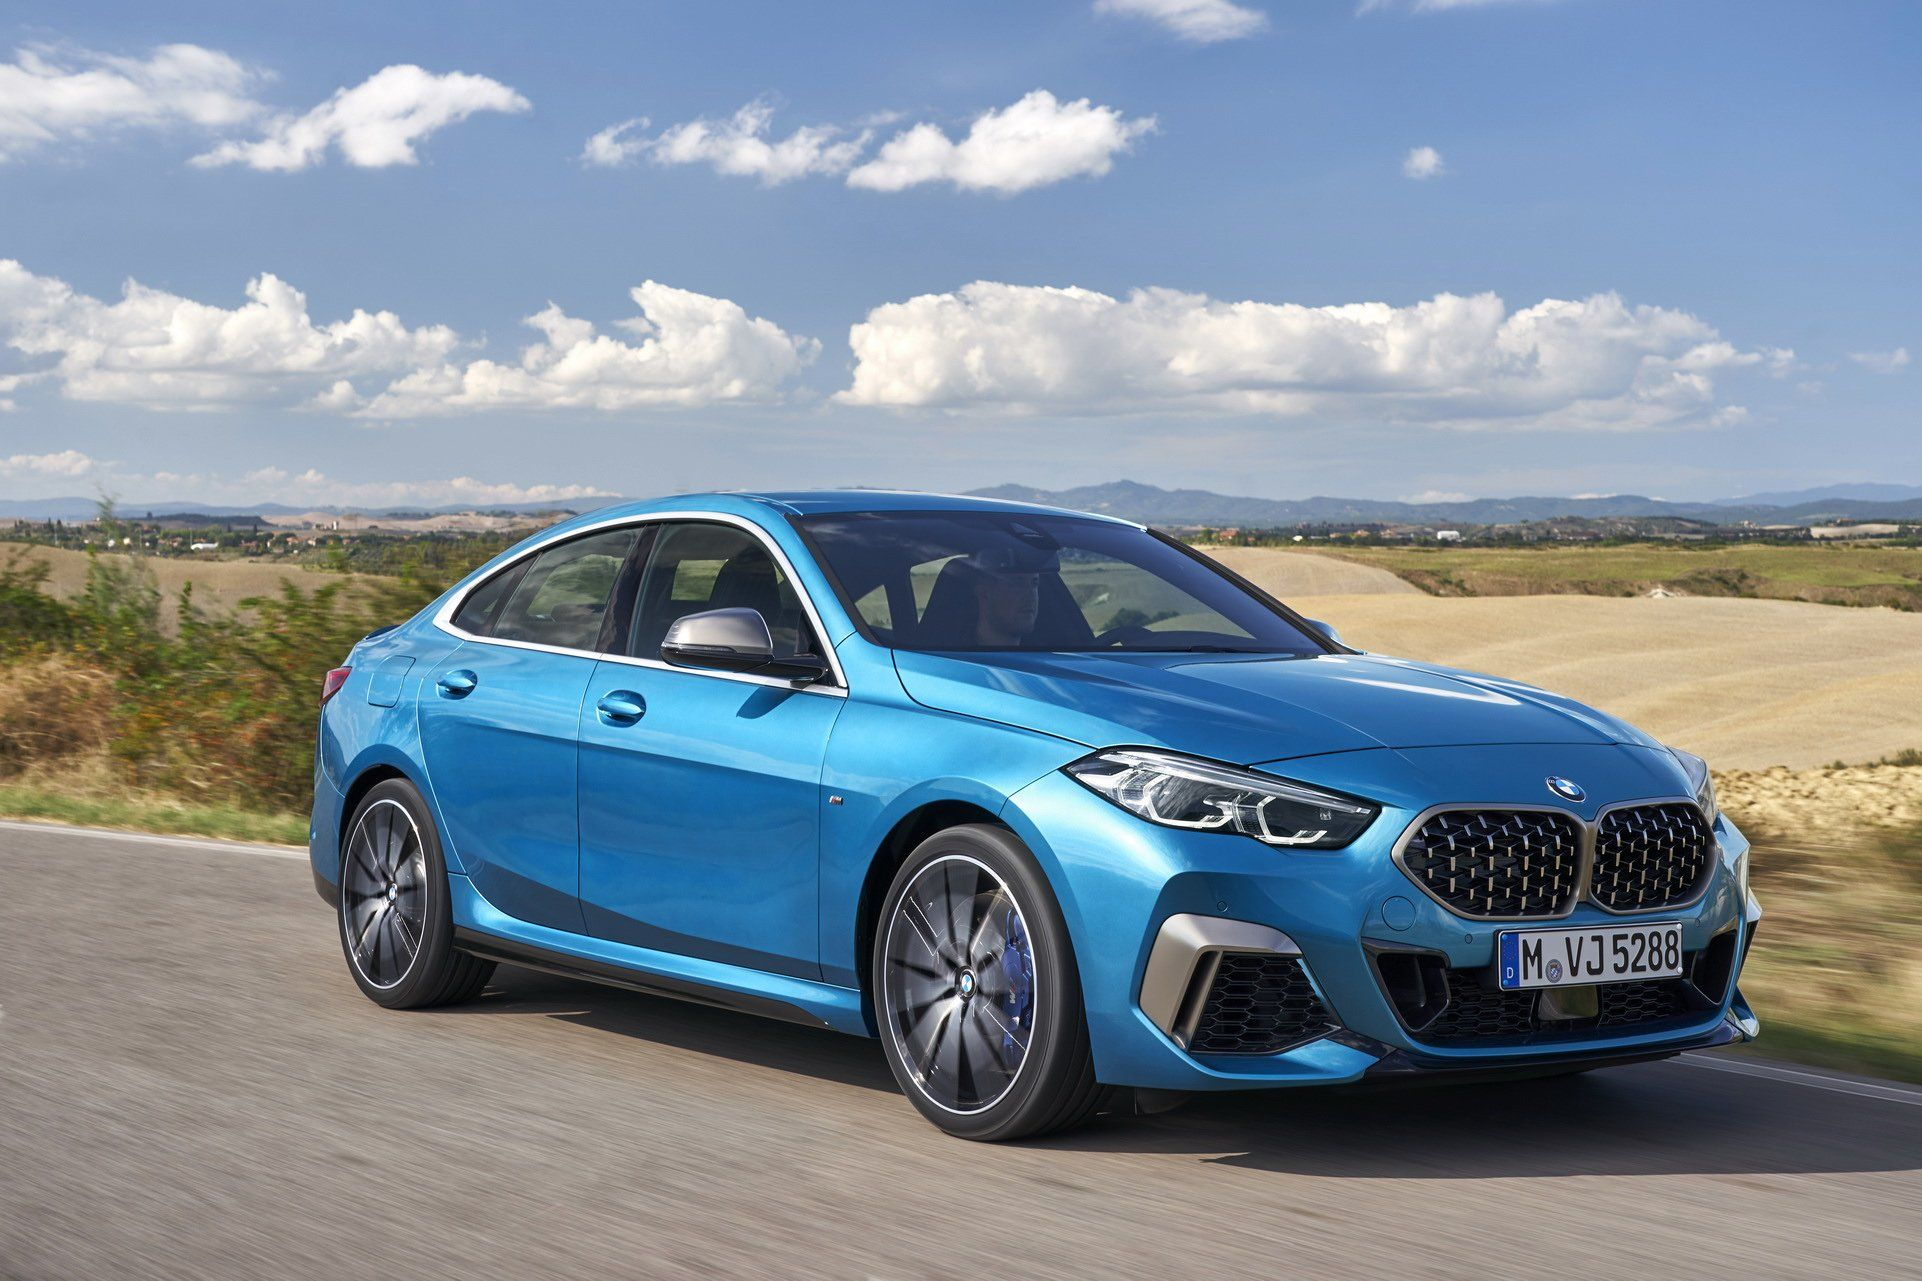 Bmw 2 Series Gran Coupe Is Official With M235i Xdrive Packing 225